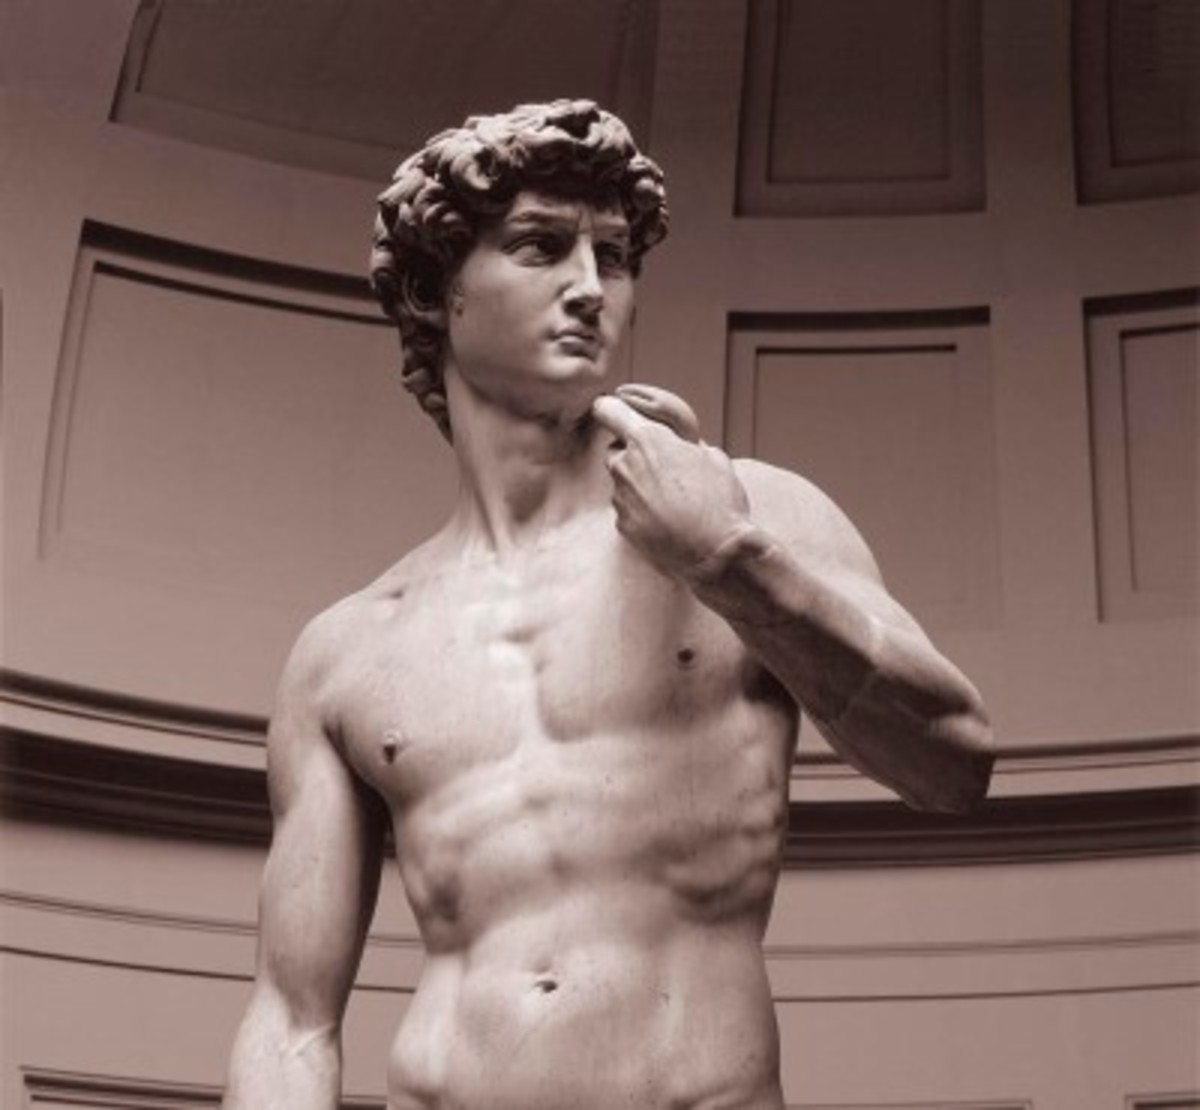 Michelangelo's David; Realist or Objectivist art?